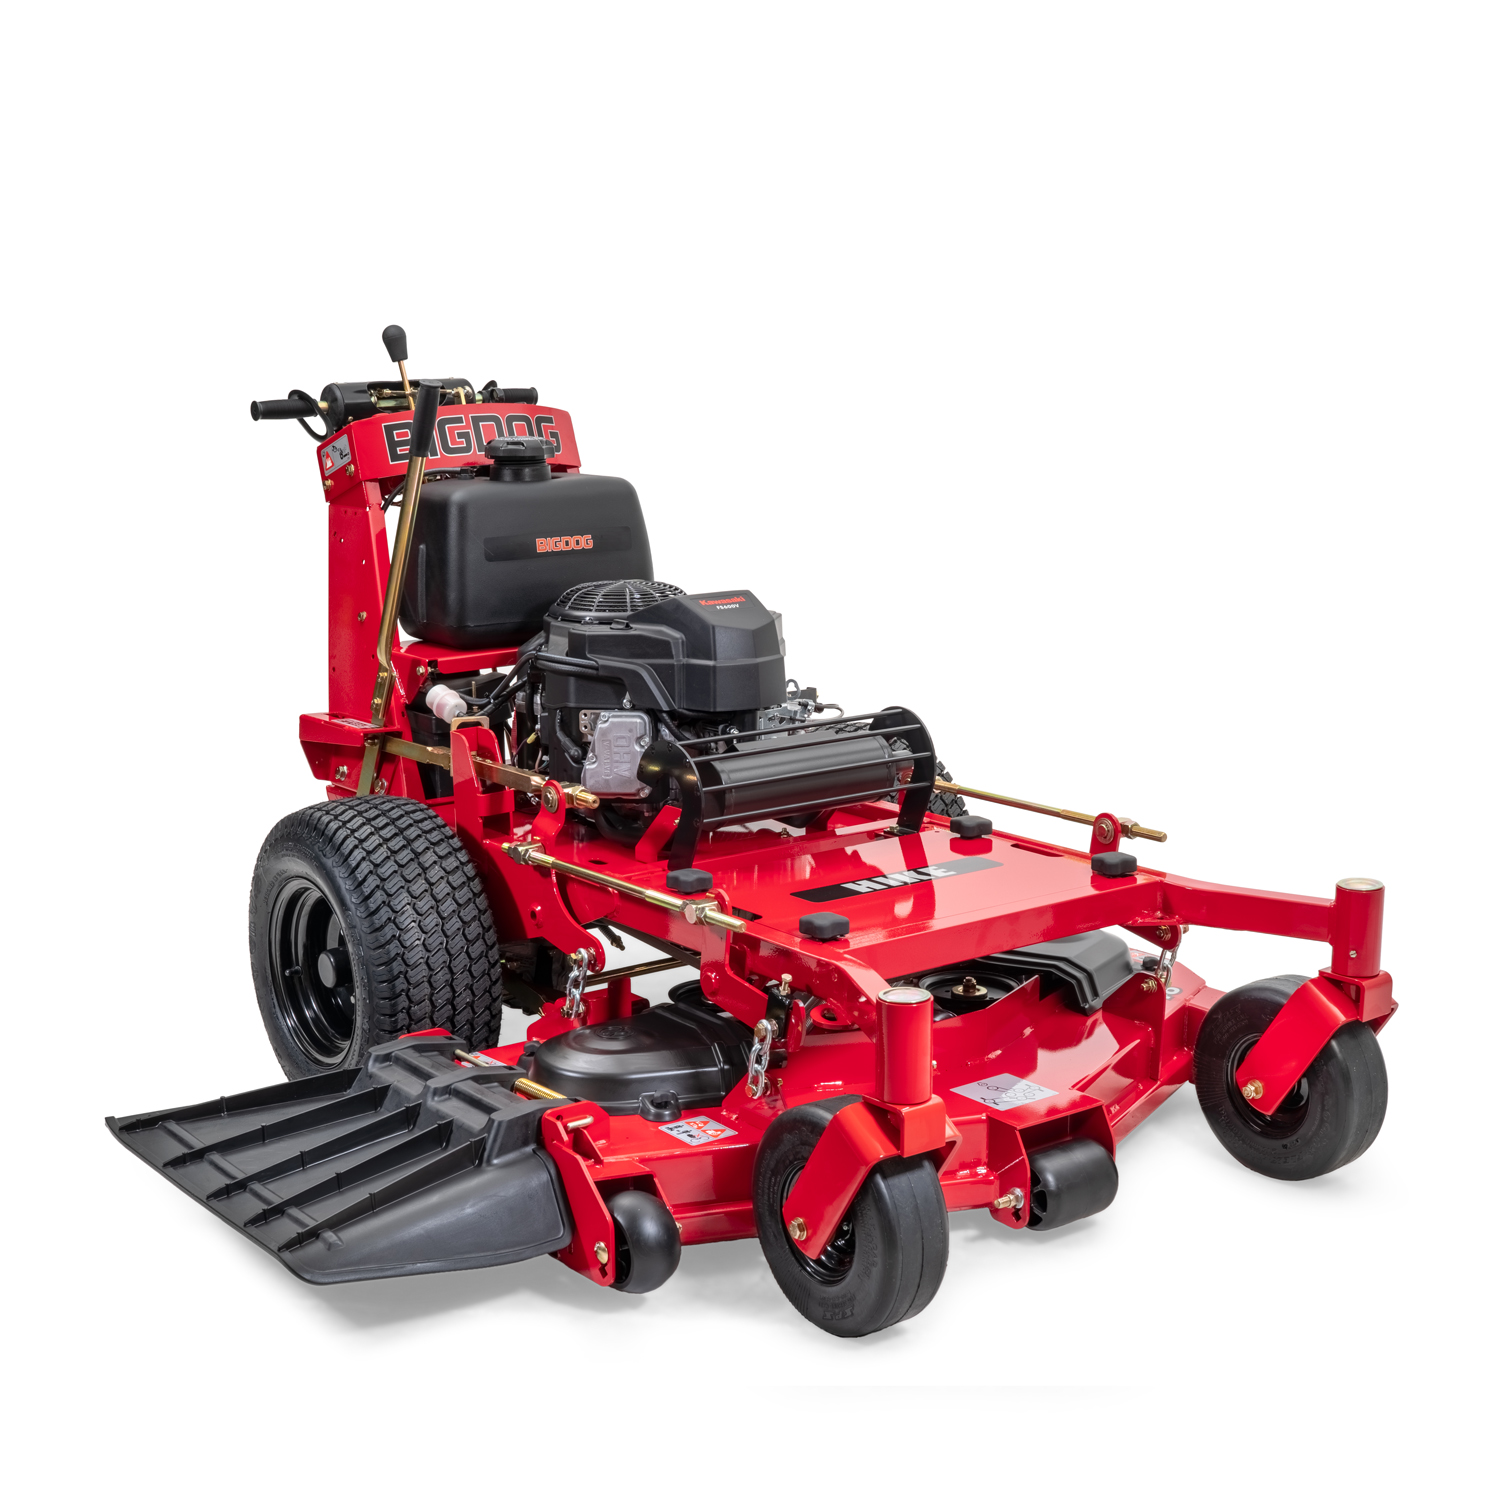 Image of the front three quarters of a red walk-behind mower